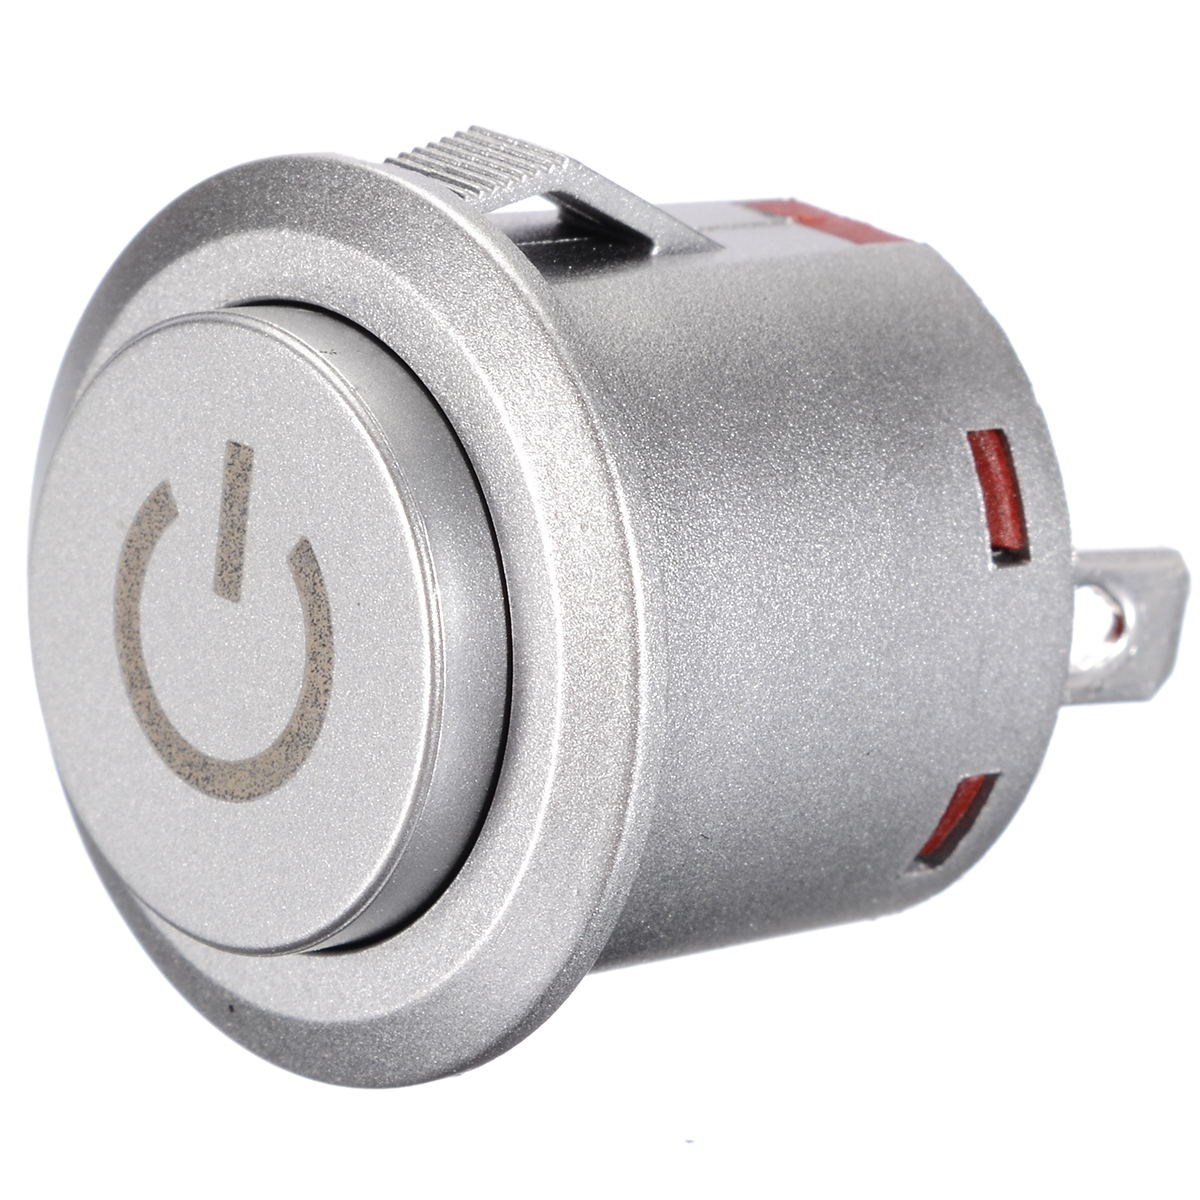 Premium Quality 16mm Stainless Steel Momentary Start Horn Button Waterproof Metal Dome Push Button Switch fast-shop